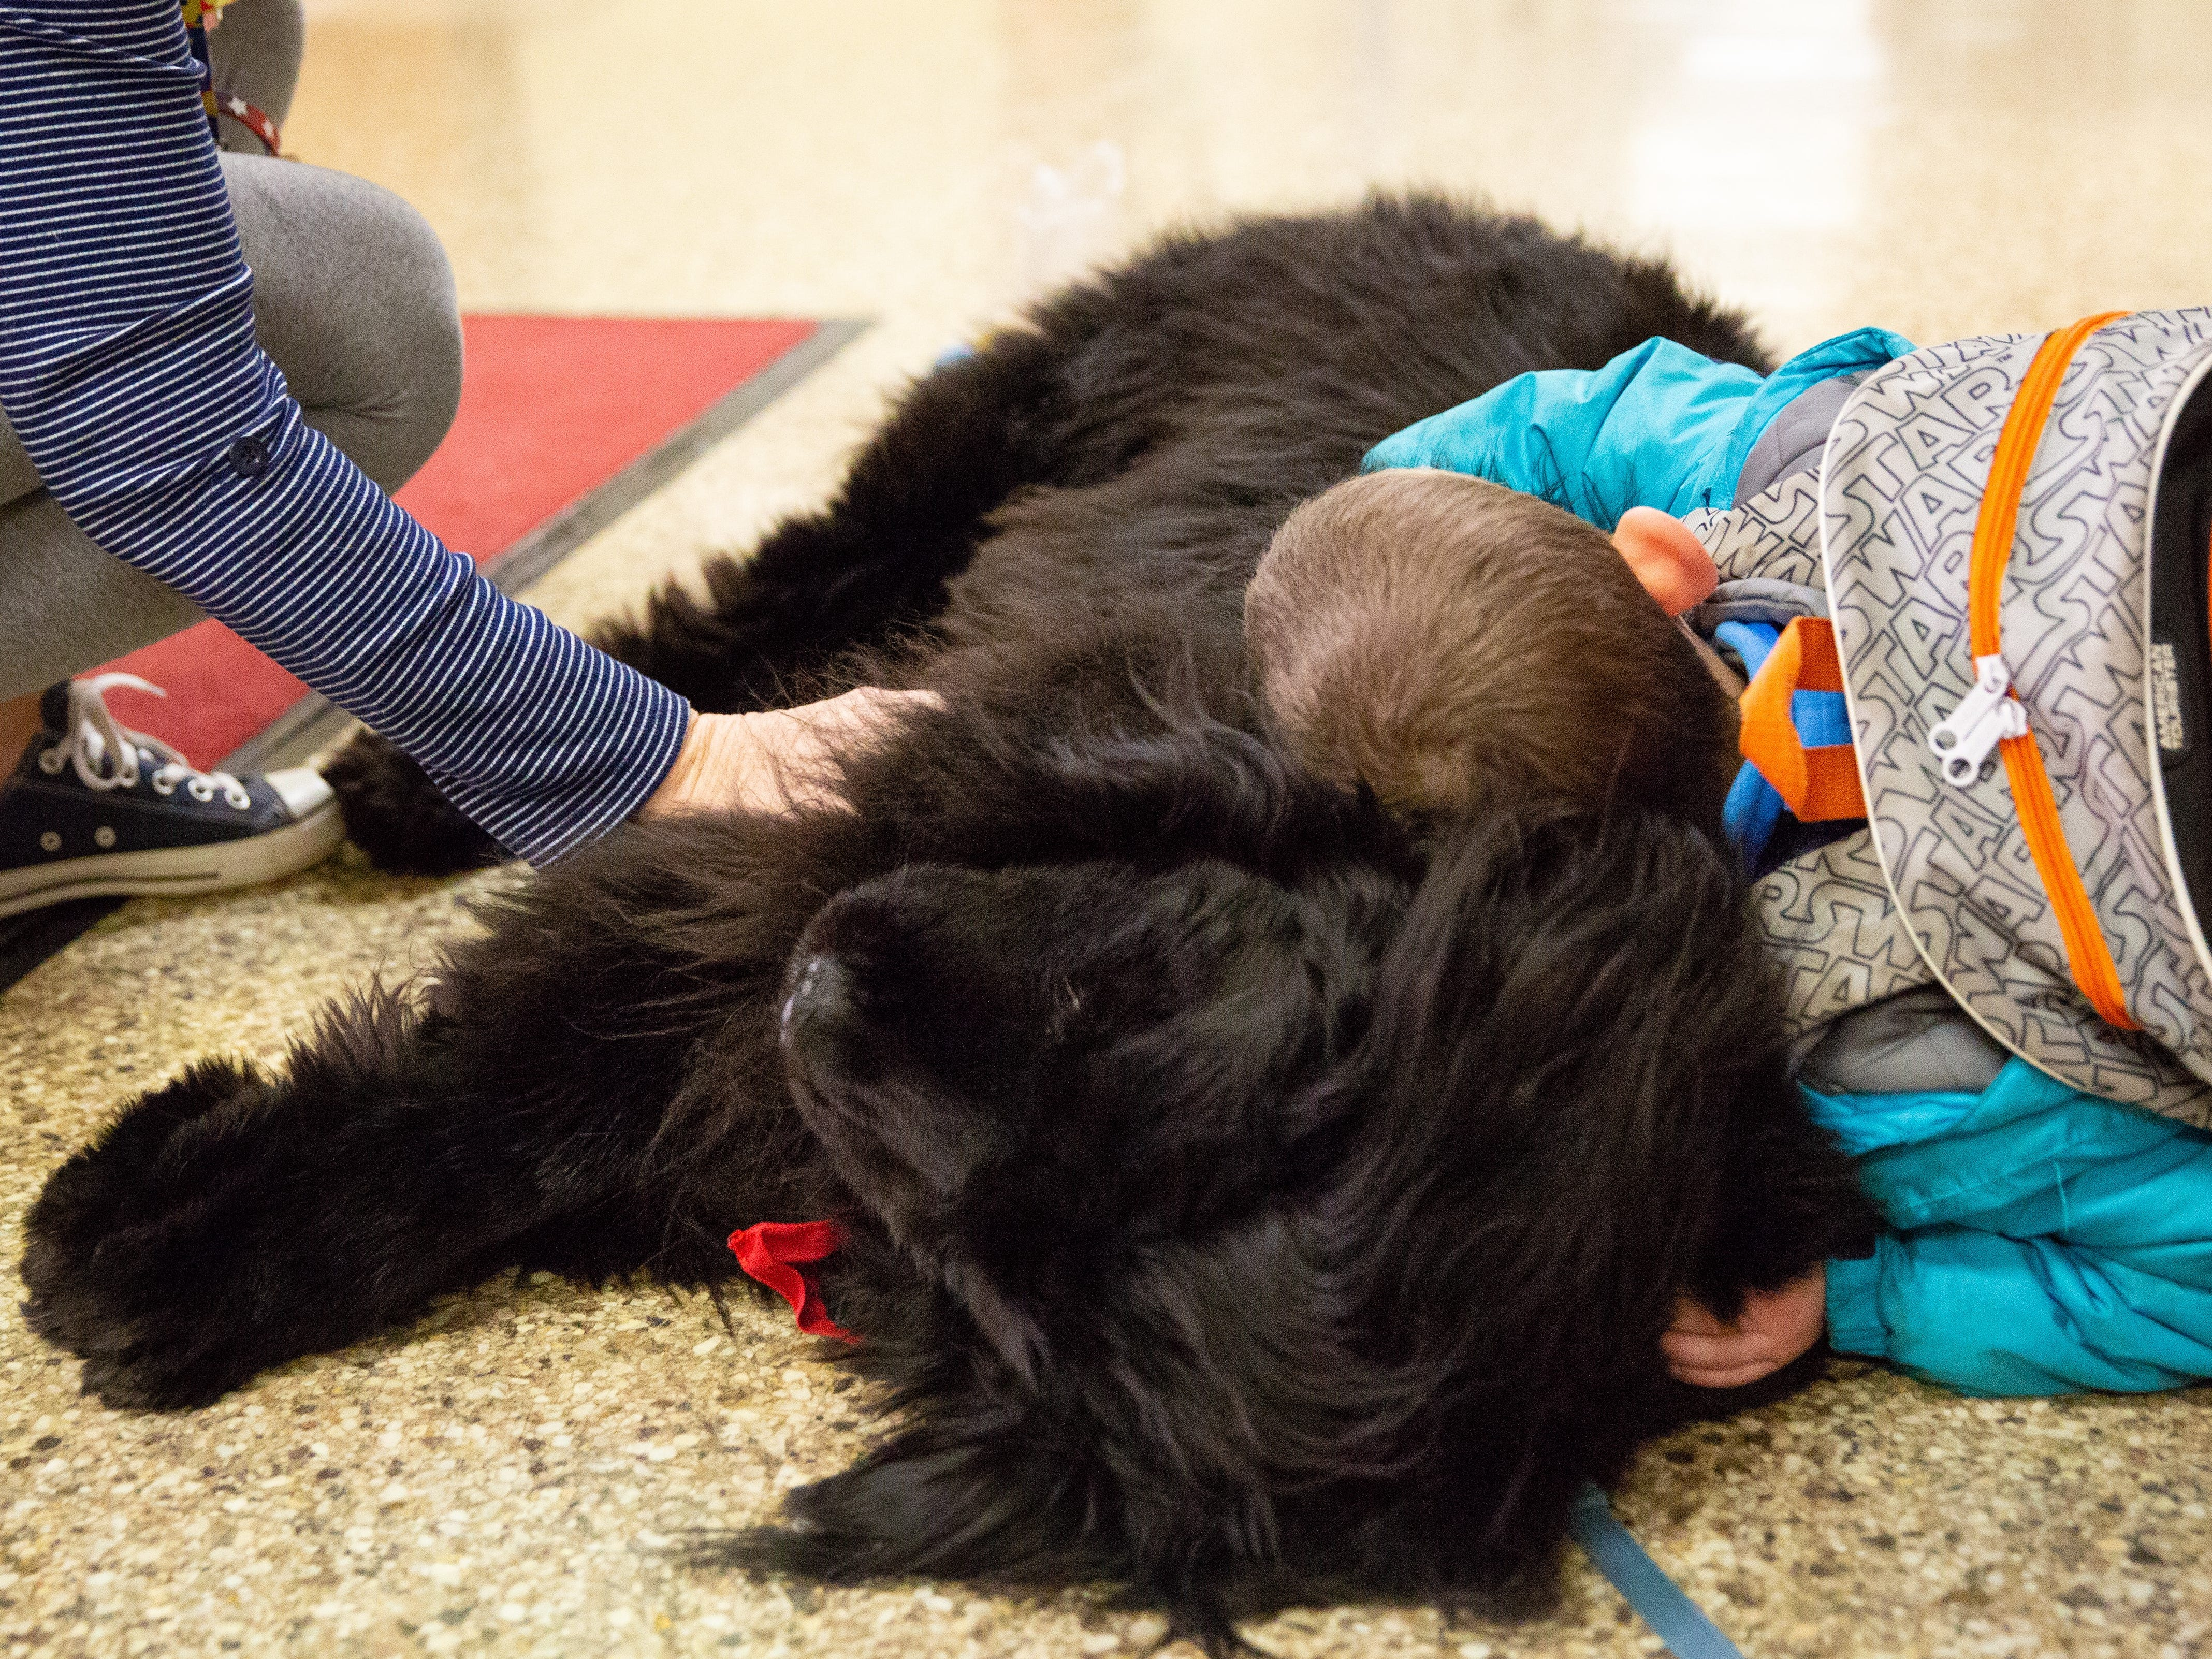 Dominic Mayo, a kindergartner at Neil Armstrong School in Gates, lies on the floor to hug Kelsey, the school's therapy dog, before school starts on the morning of Feb. 4, 2019.